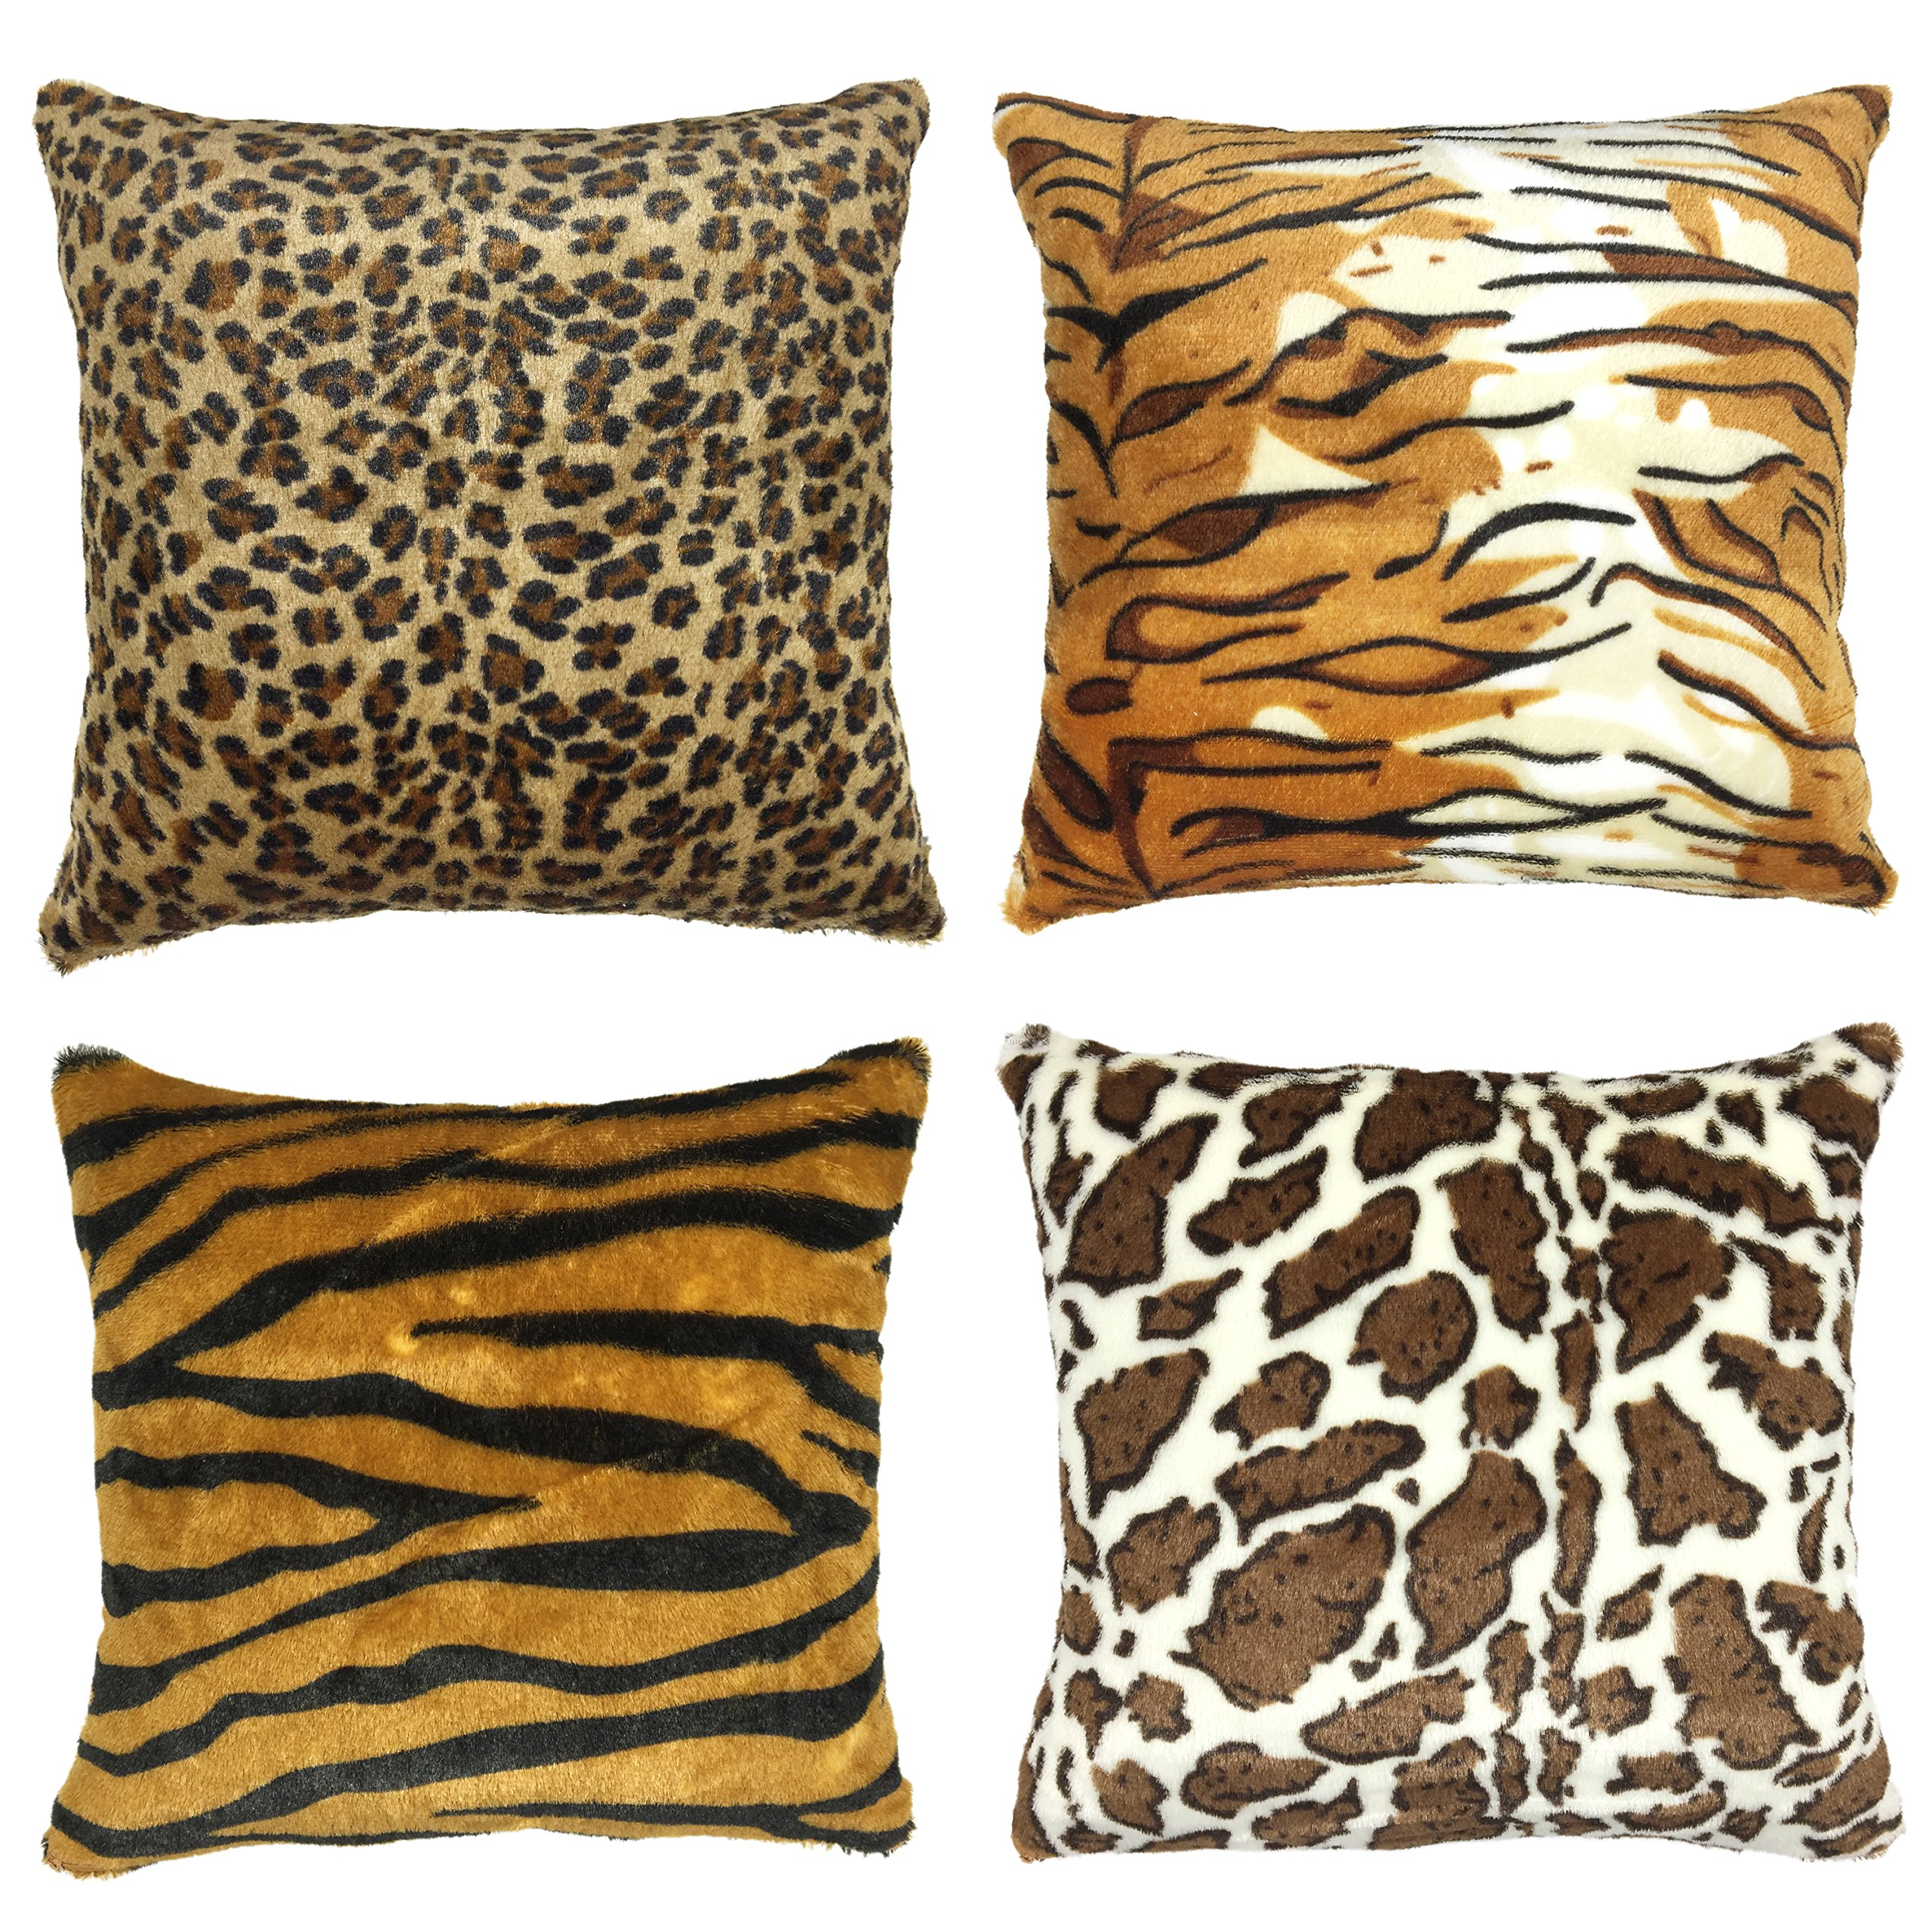 YOUR SMILE Set of 4 Decorative Throw Pillow Case Cushion Covers Square 17x17 Inch(Faux Fur Animal Print)